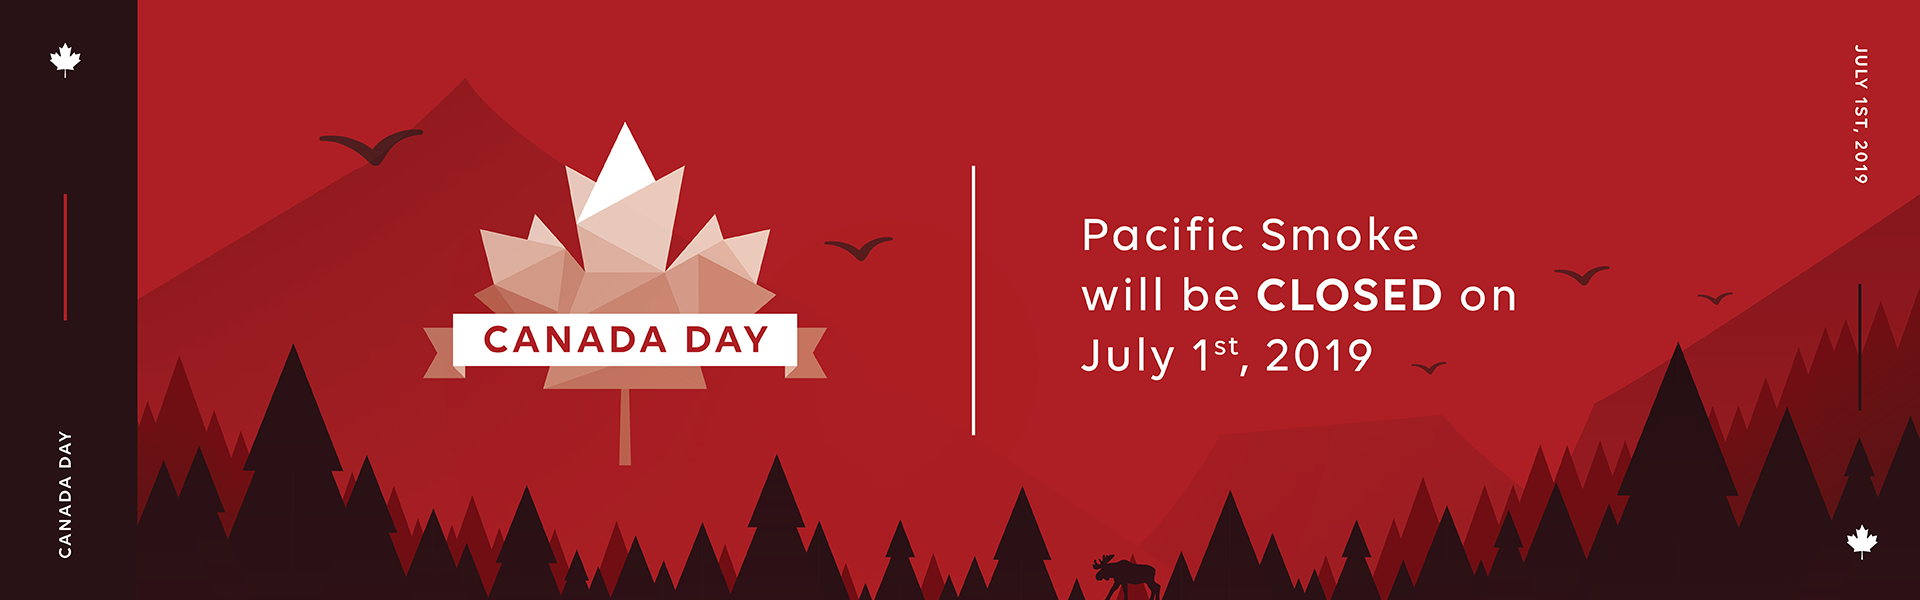 PSI closes on July 1st for Cananda Day